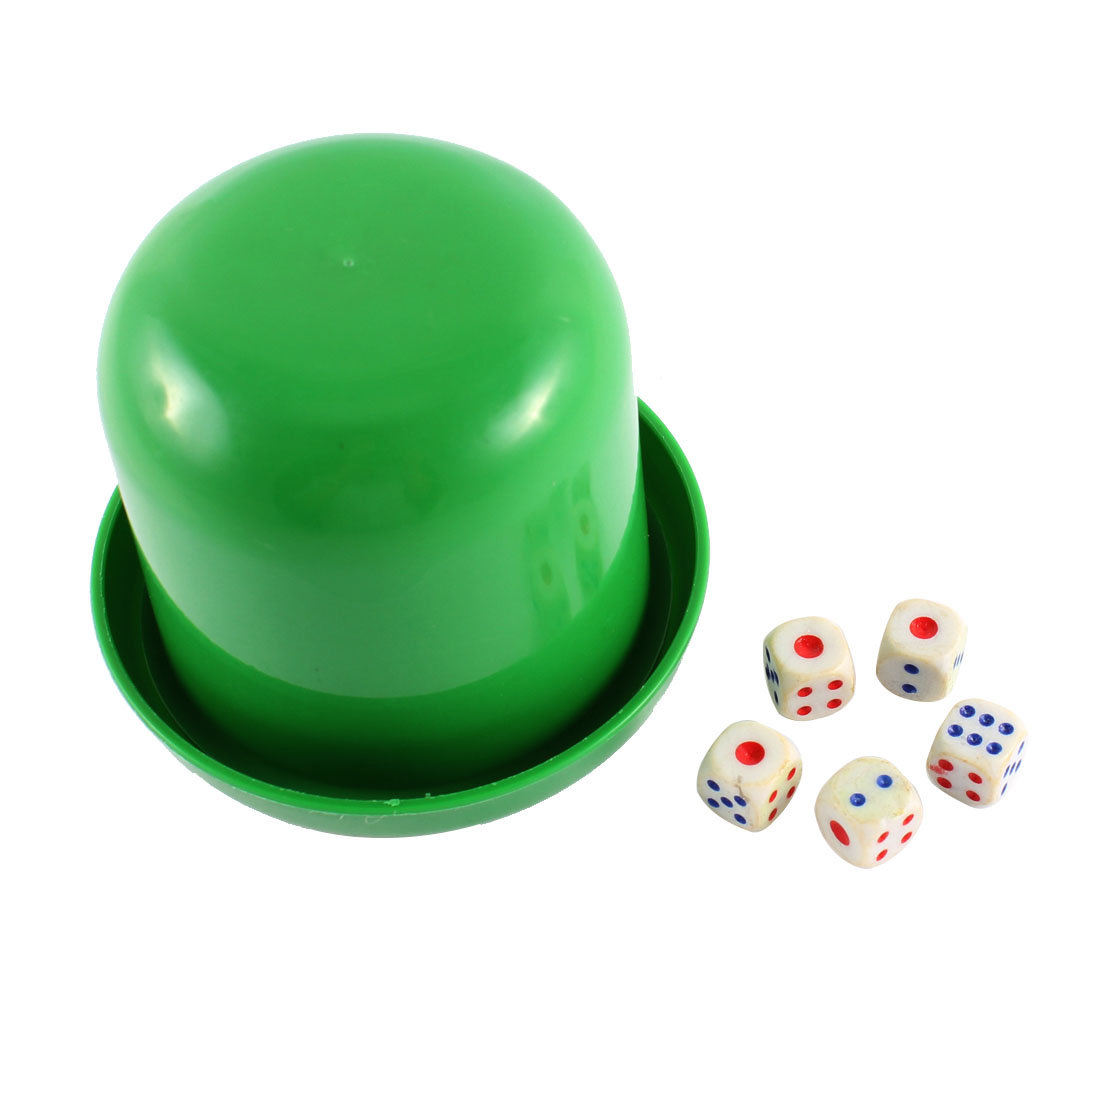 KTV Party Bar Casino Green Round Plastic Shaker Cup w 5 Pcs Dices